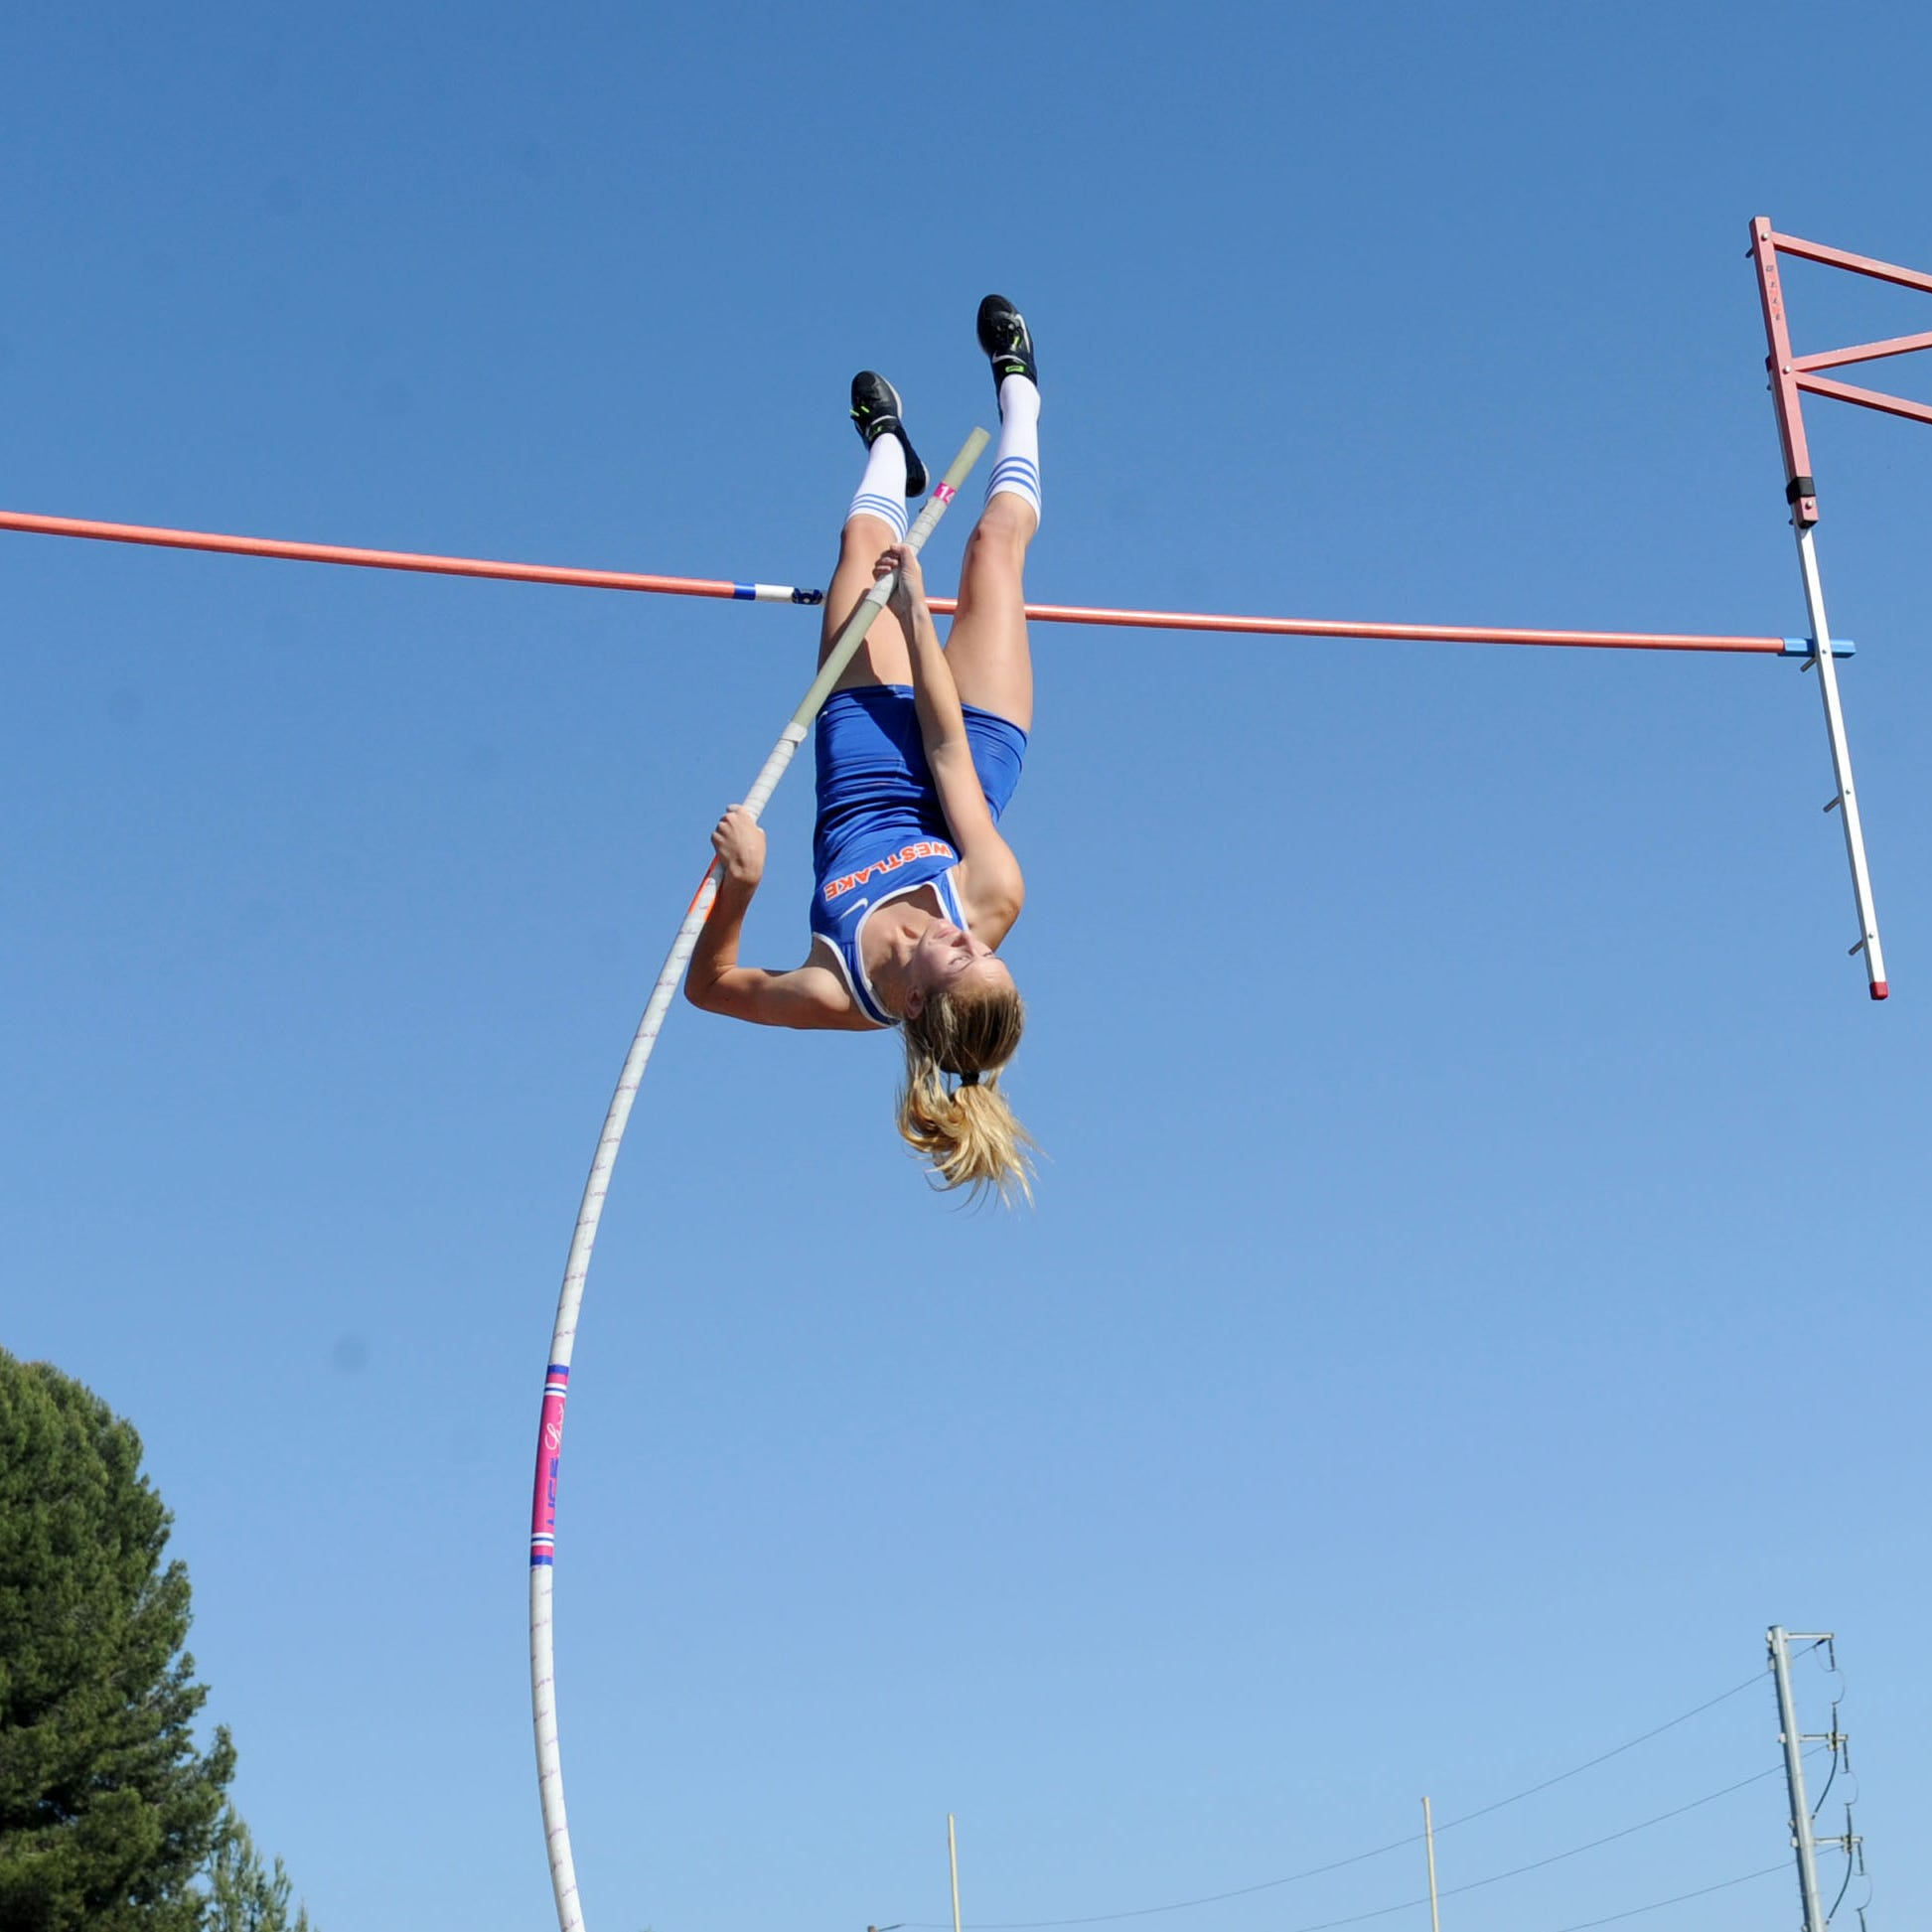 The pole vault isn't for everyone, but it's a one-of-kind rush for those who dare to fly